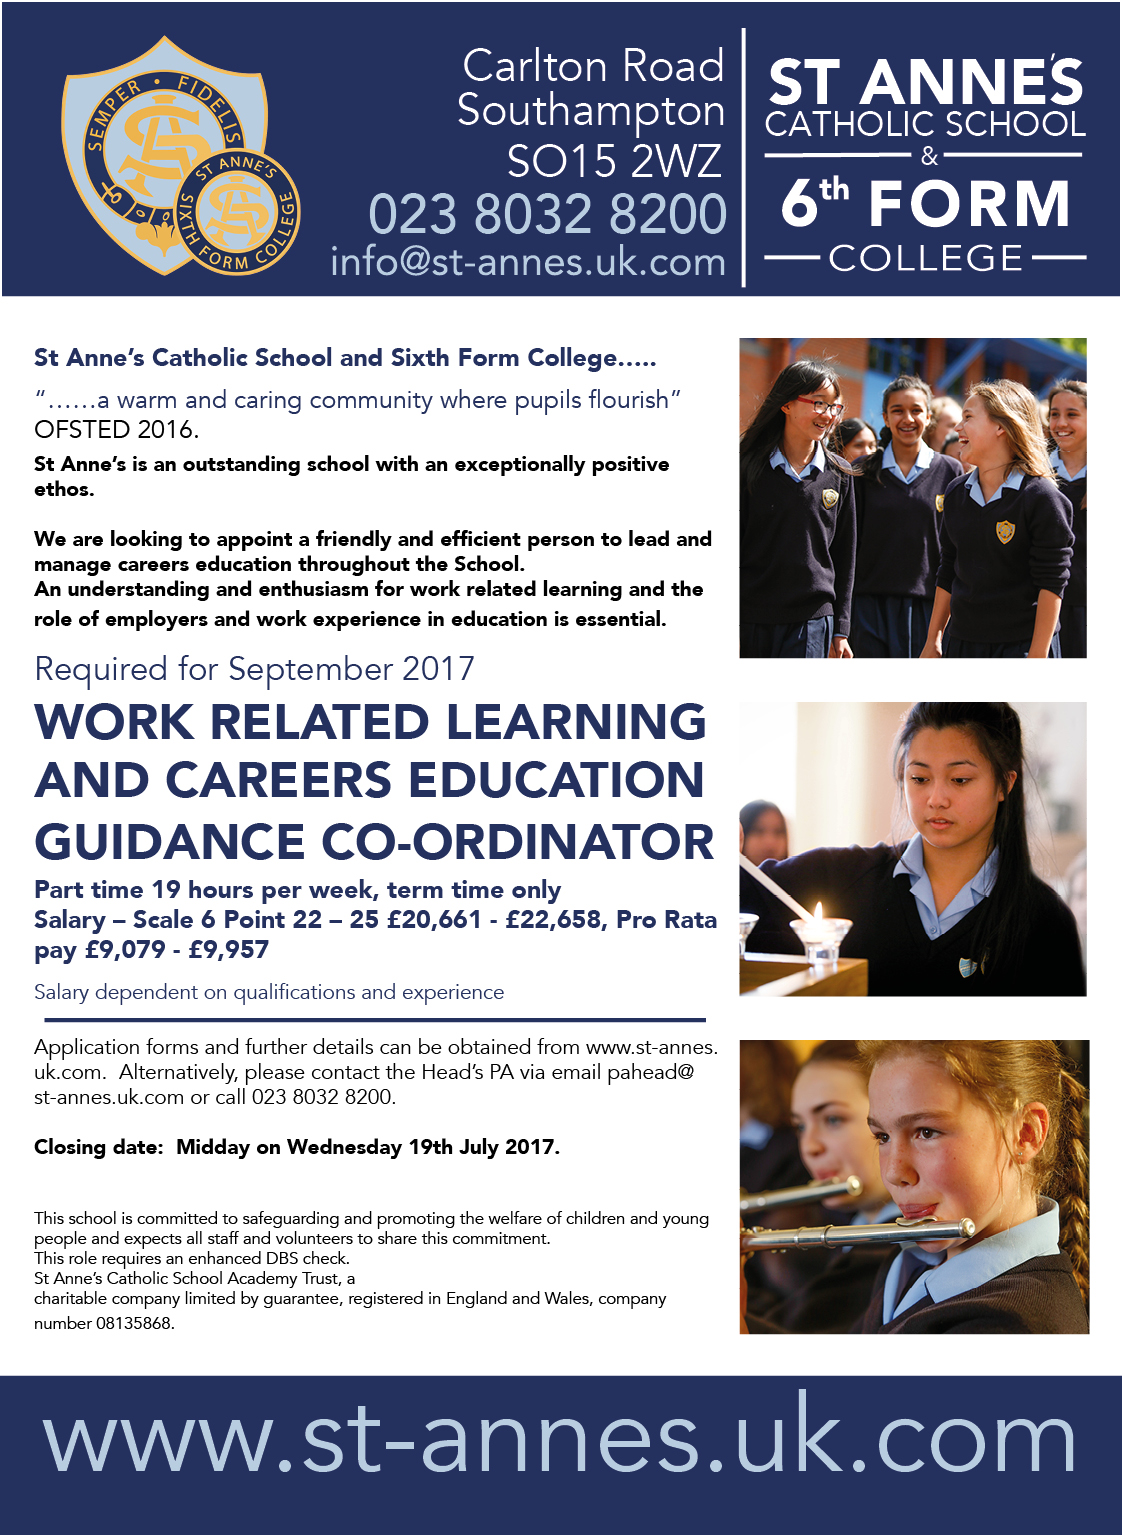 WORK RELATED LEARNING AND CAREERS EDUCATION GUIDANCE CO-ORDINATOR job advert